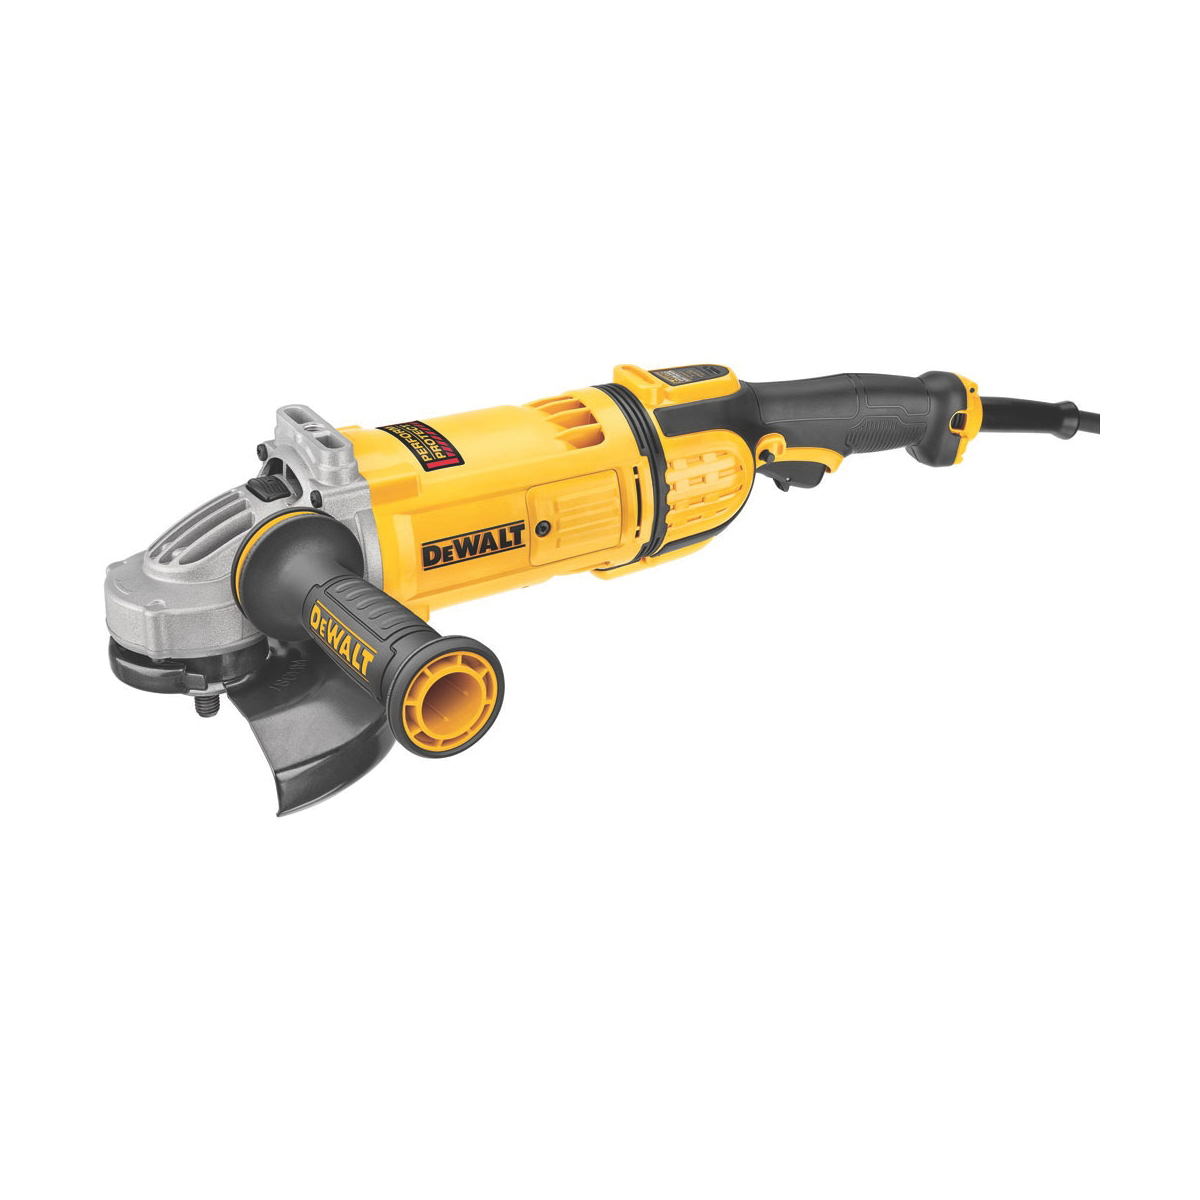 DeWALT® DWE4597 Protect™ Large Angle Grinder, 7 in Dia Wheel, 5/8-11 Arbor/Shank, 120 VAC, Yellow, Yes Dust Management, Lock-On Trigger Switch Switch, Tool Only